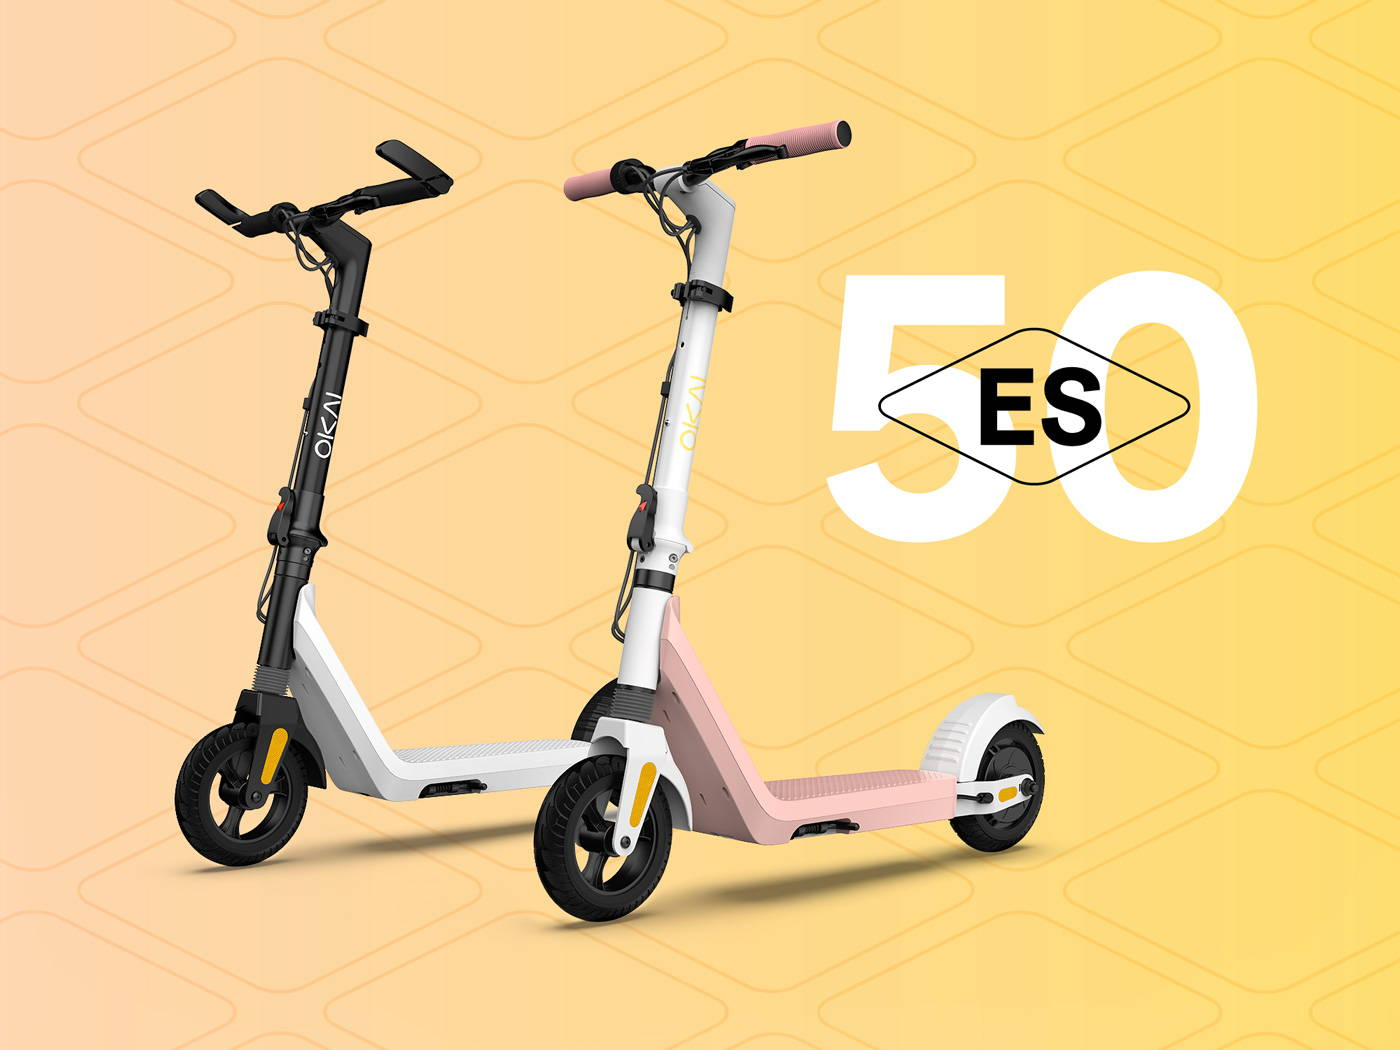 Okai Electric Scooter & Electric Bike Manufacturer, ES50 Electric Scooter White & Rosa